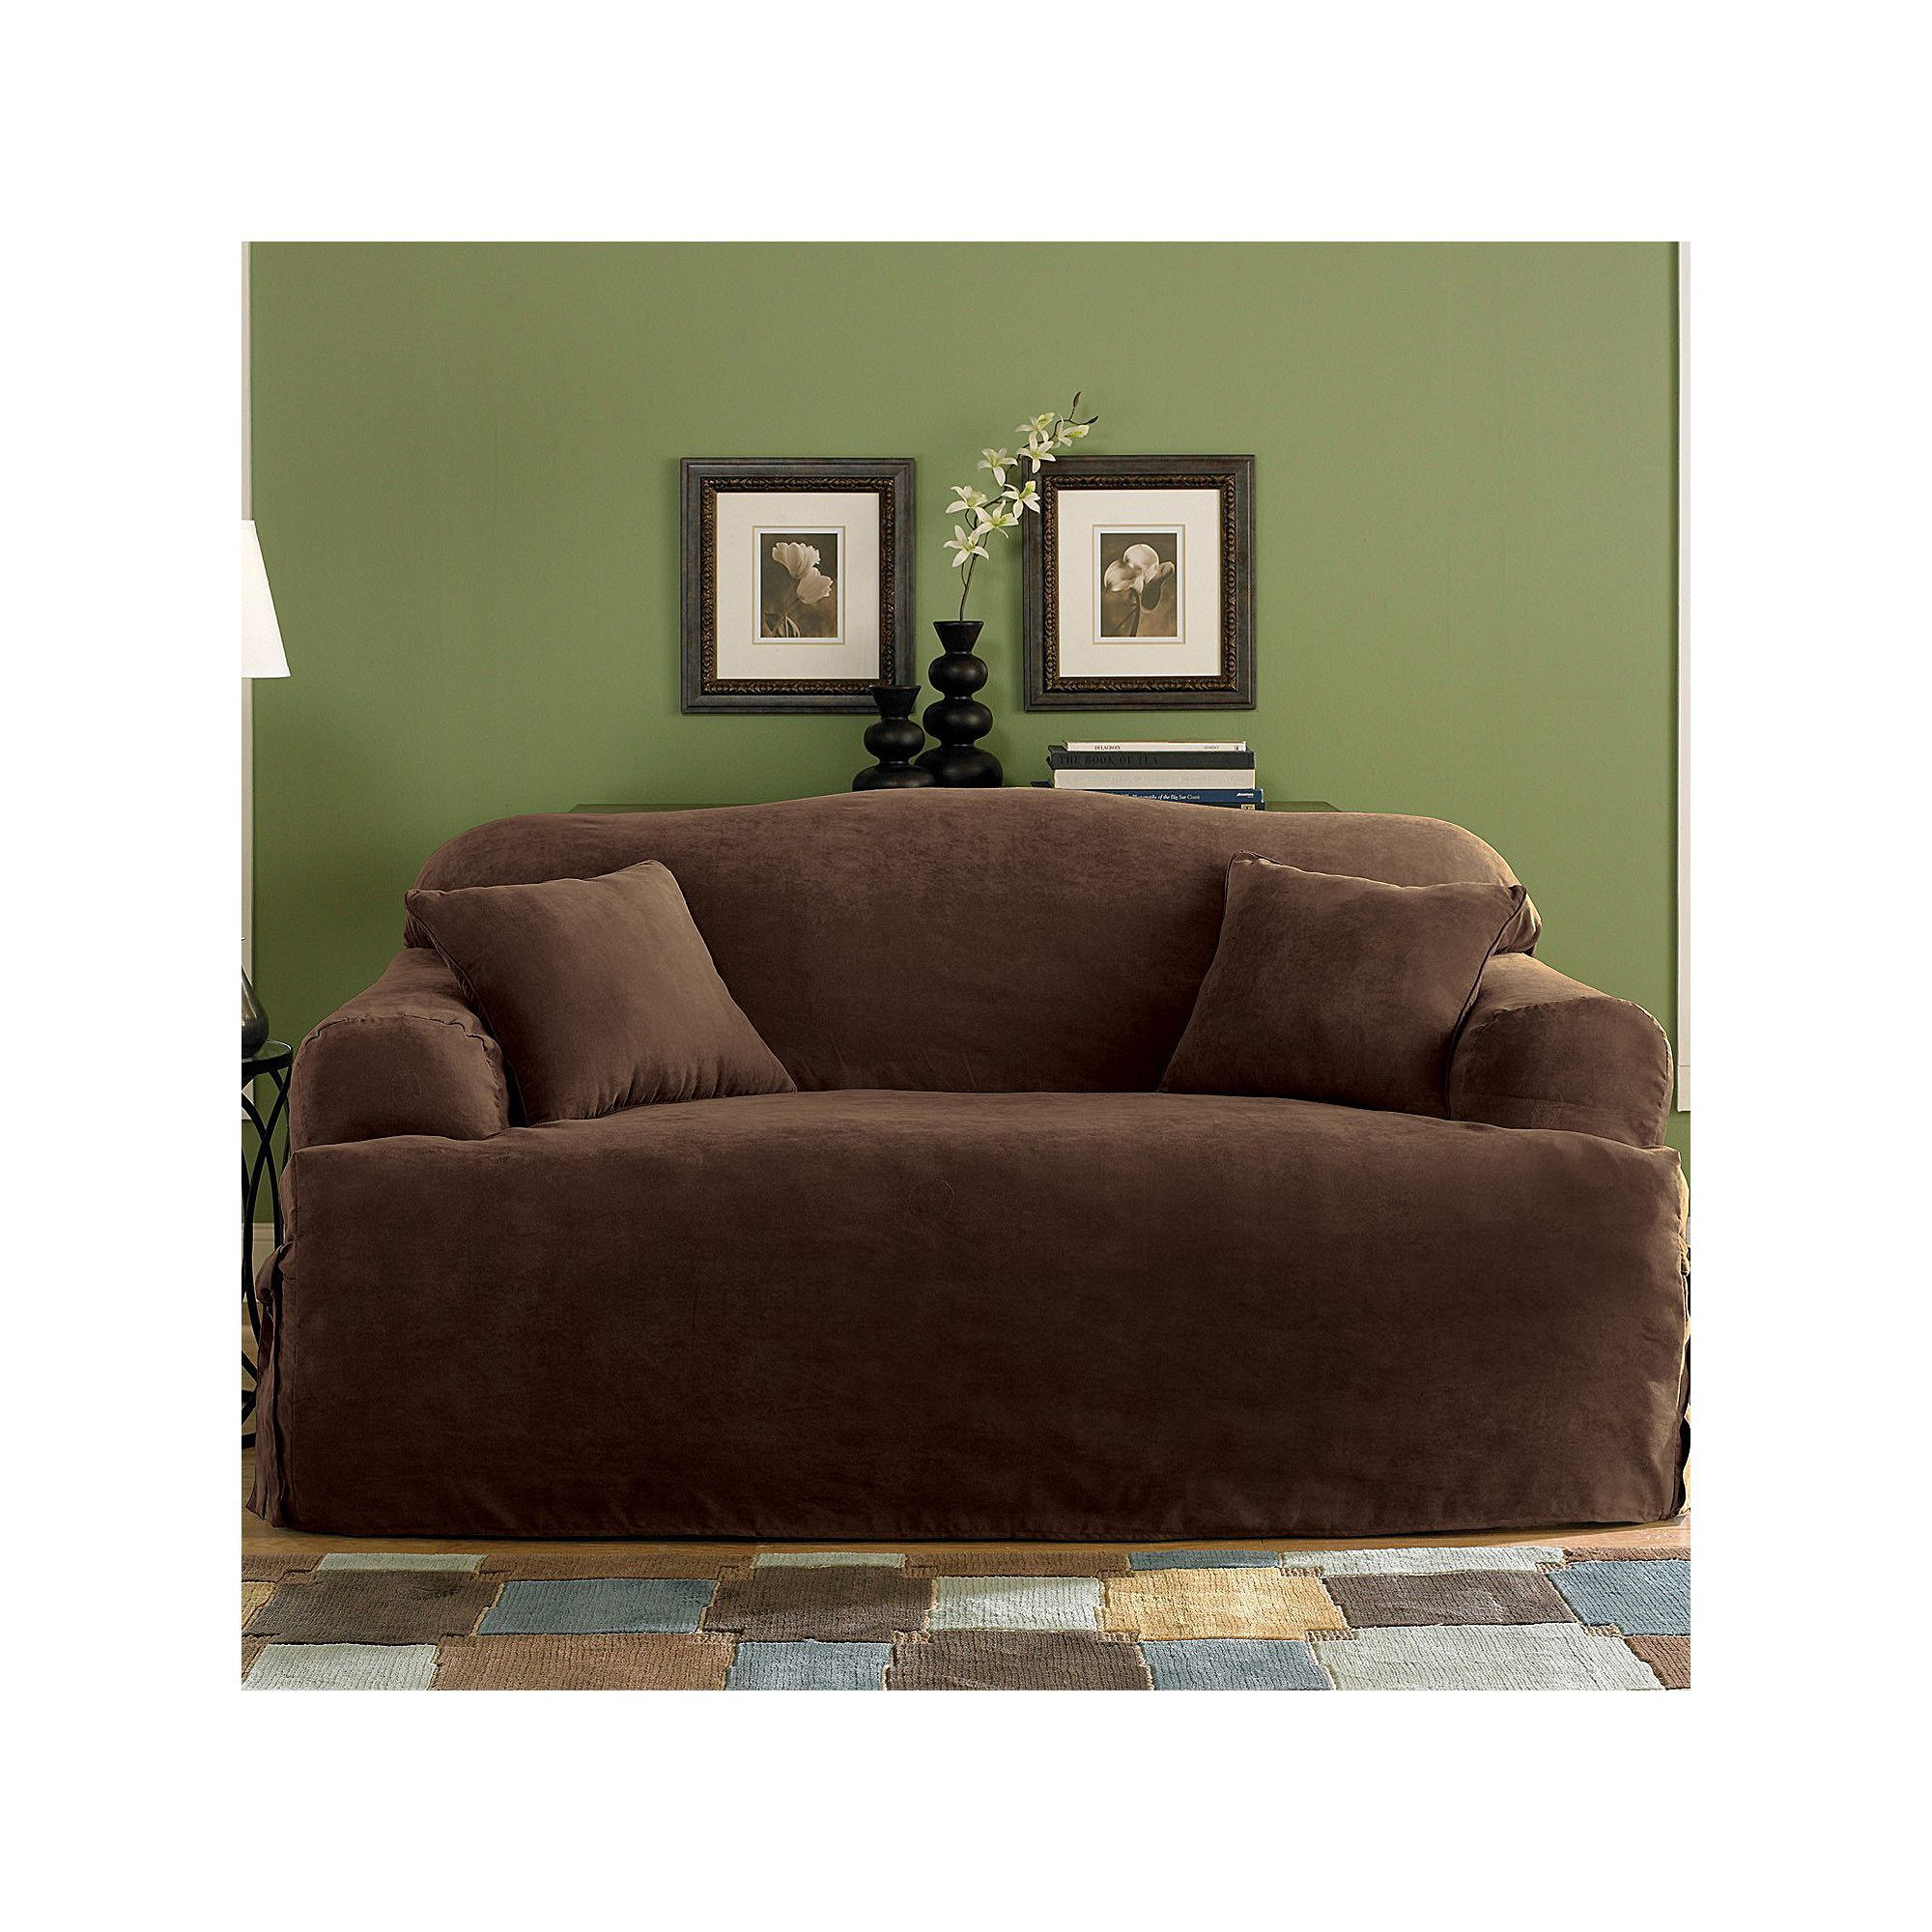 Sure Fit Soft Suede Sofa Slipcover Cheap Small Sofas For Bedrooms Faux Protector Maytex Piped Non